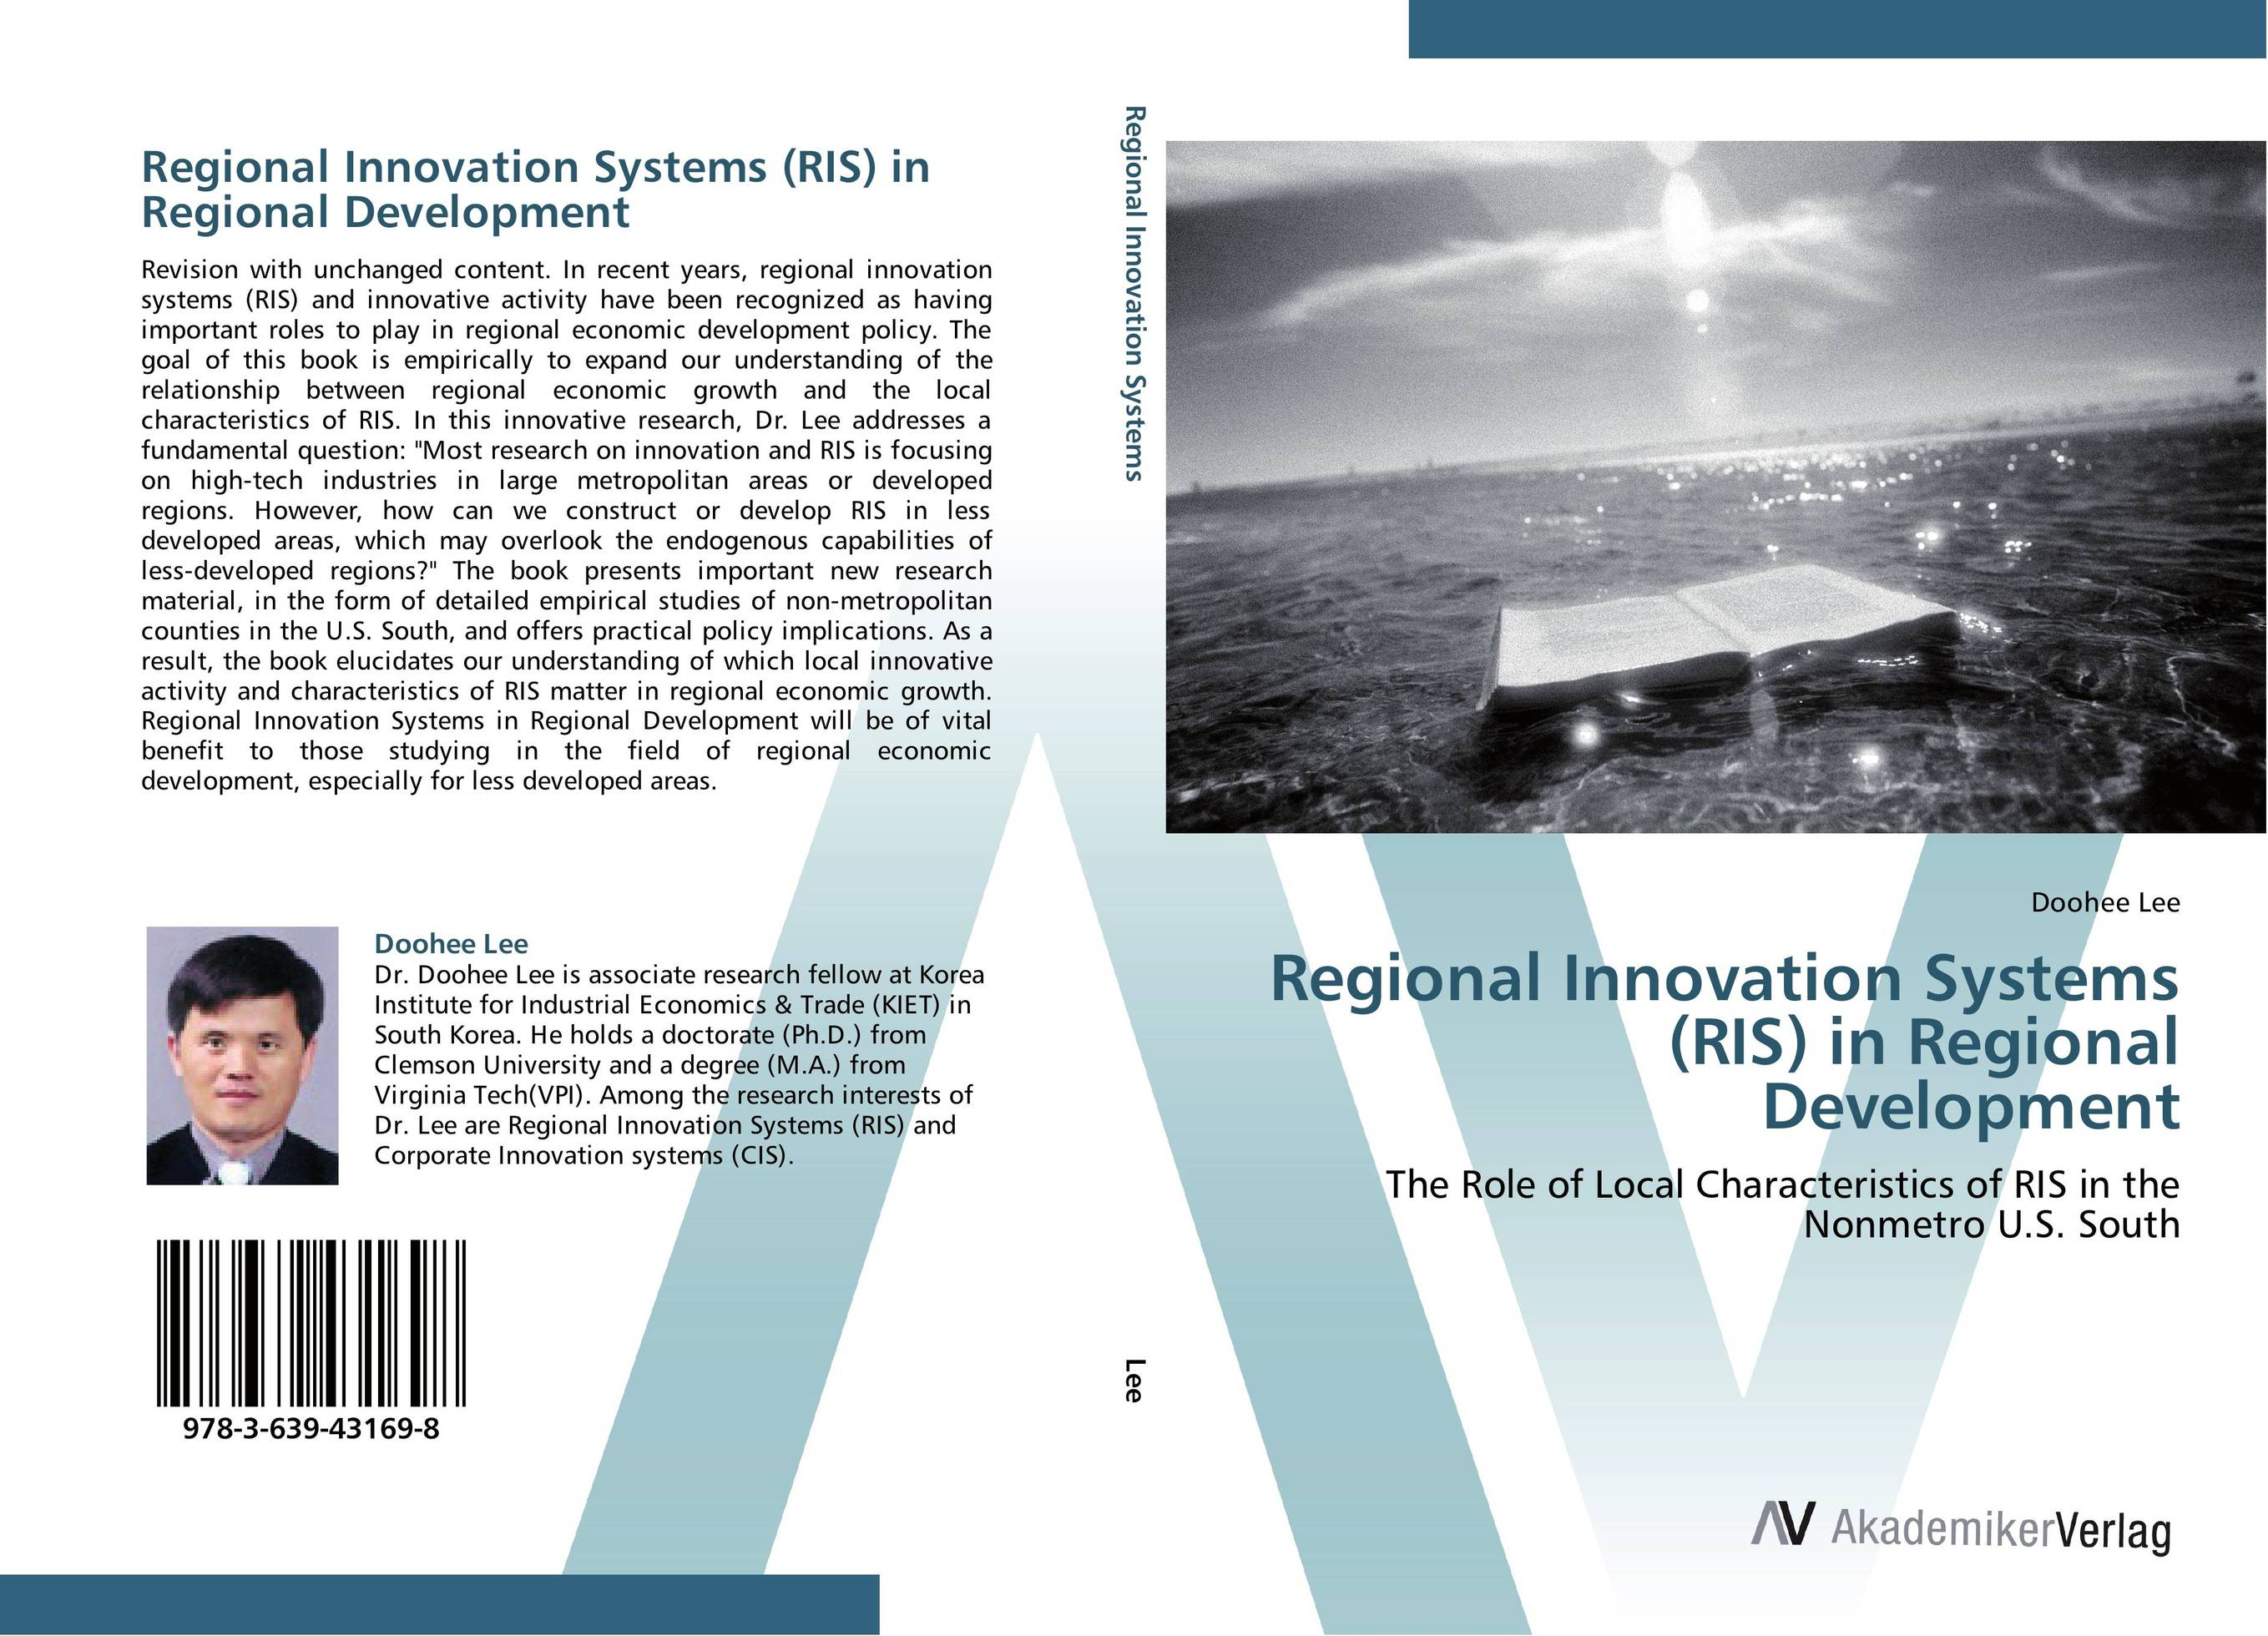 Regional Innovation Systems (RIS) in Regional Development duncan bruce the dream cafe lessons in the art of radical innovation